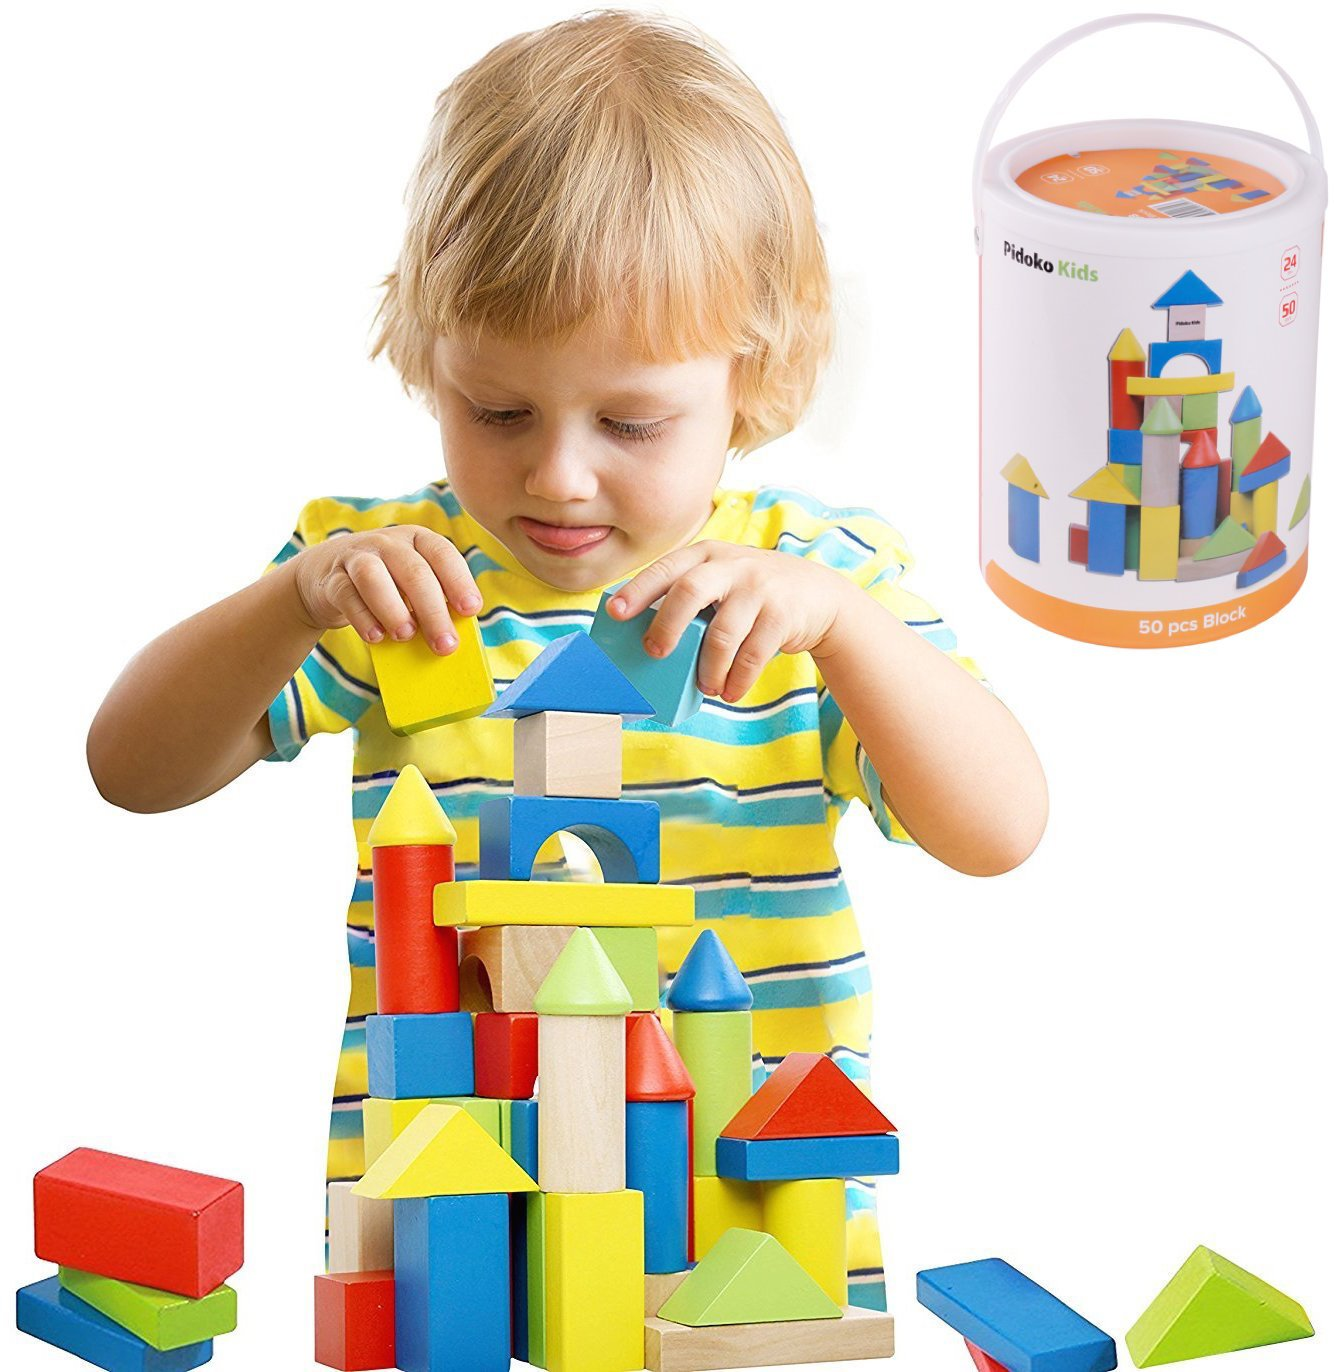 Deluxe 50 Piece Hand-Crafted Wooden Building Blocks Set with Carrying Container - Hardwood Plain & Colored Wood Playing Toy Blocks for Boys & Girls - Durable Stacking Blocks for Toddlers Preschool age